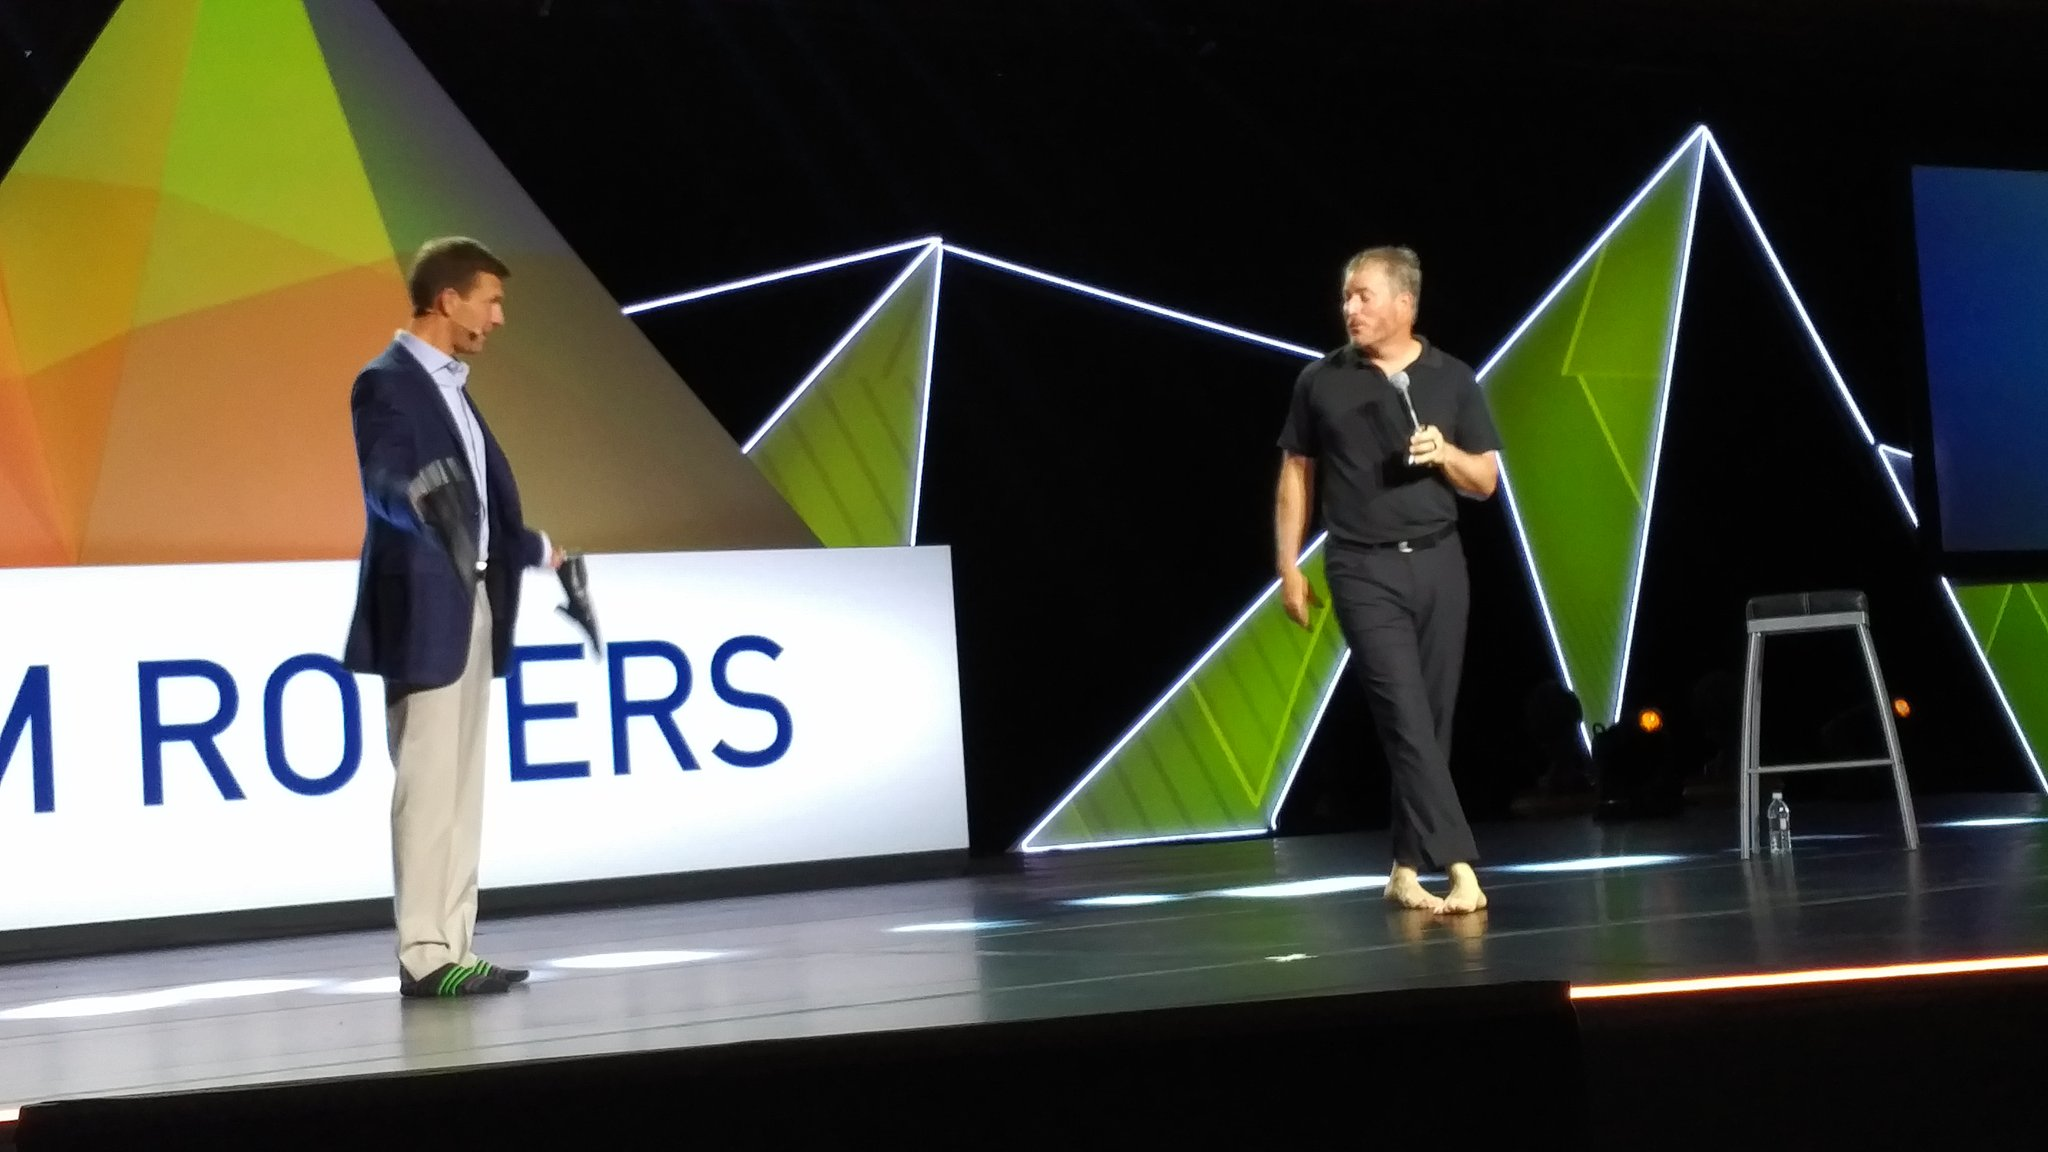 Next up - @adamr and @WEHicks with shoes on stage at #Ulticonnect https://t.co/u1QhcRewYb